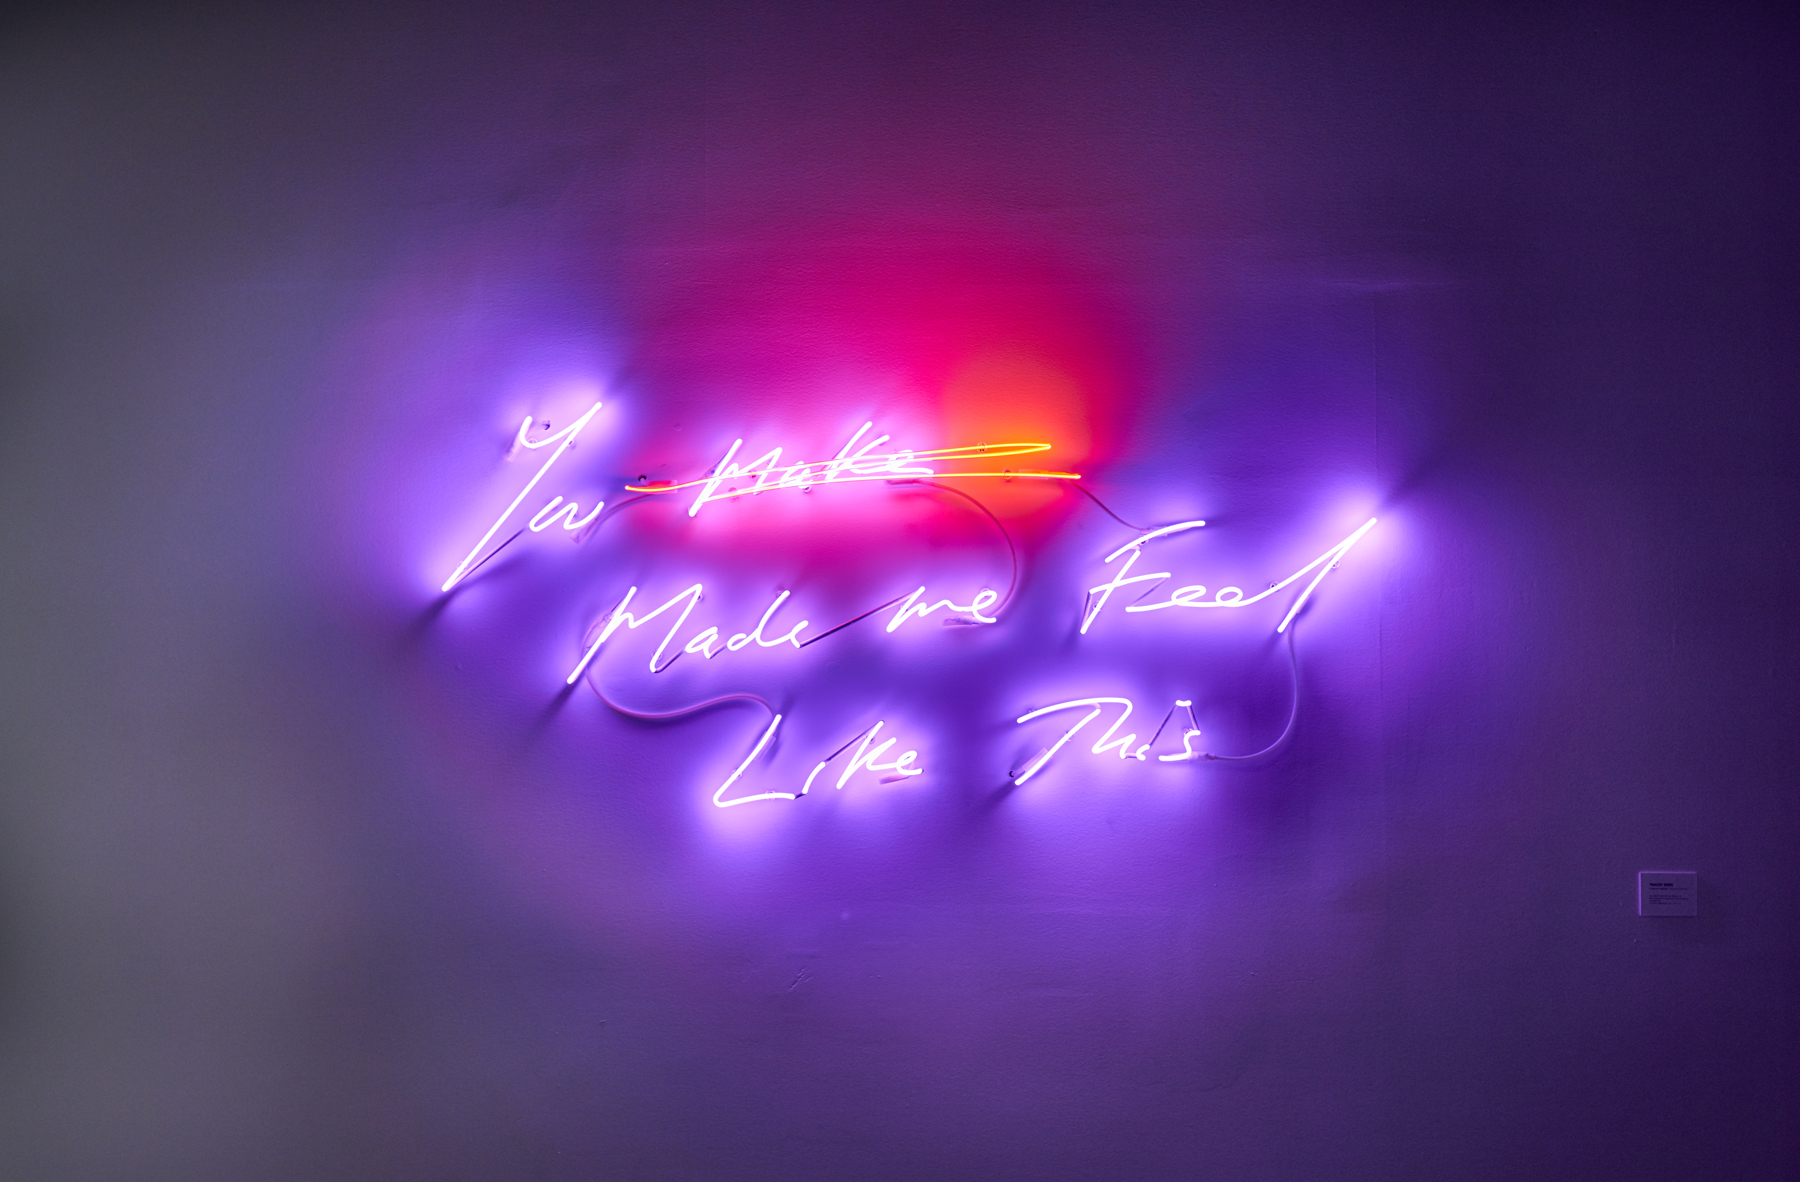 """Tracey Emin ,  You Made Me Feel Like This , 2018, Ed. 1/3, Neon (magenta and light red), 28 1/8"""" x 65 5/8"""" (71,4 x 166,7 cm). Photo credit: Romain Guilbault"""